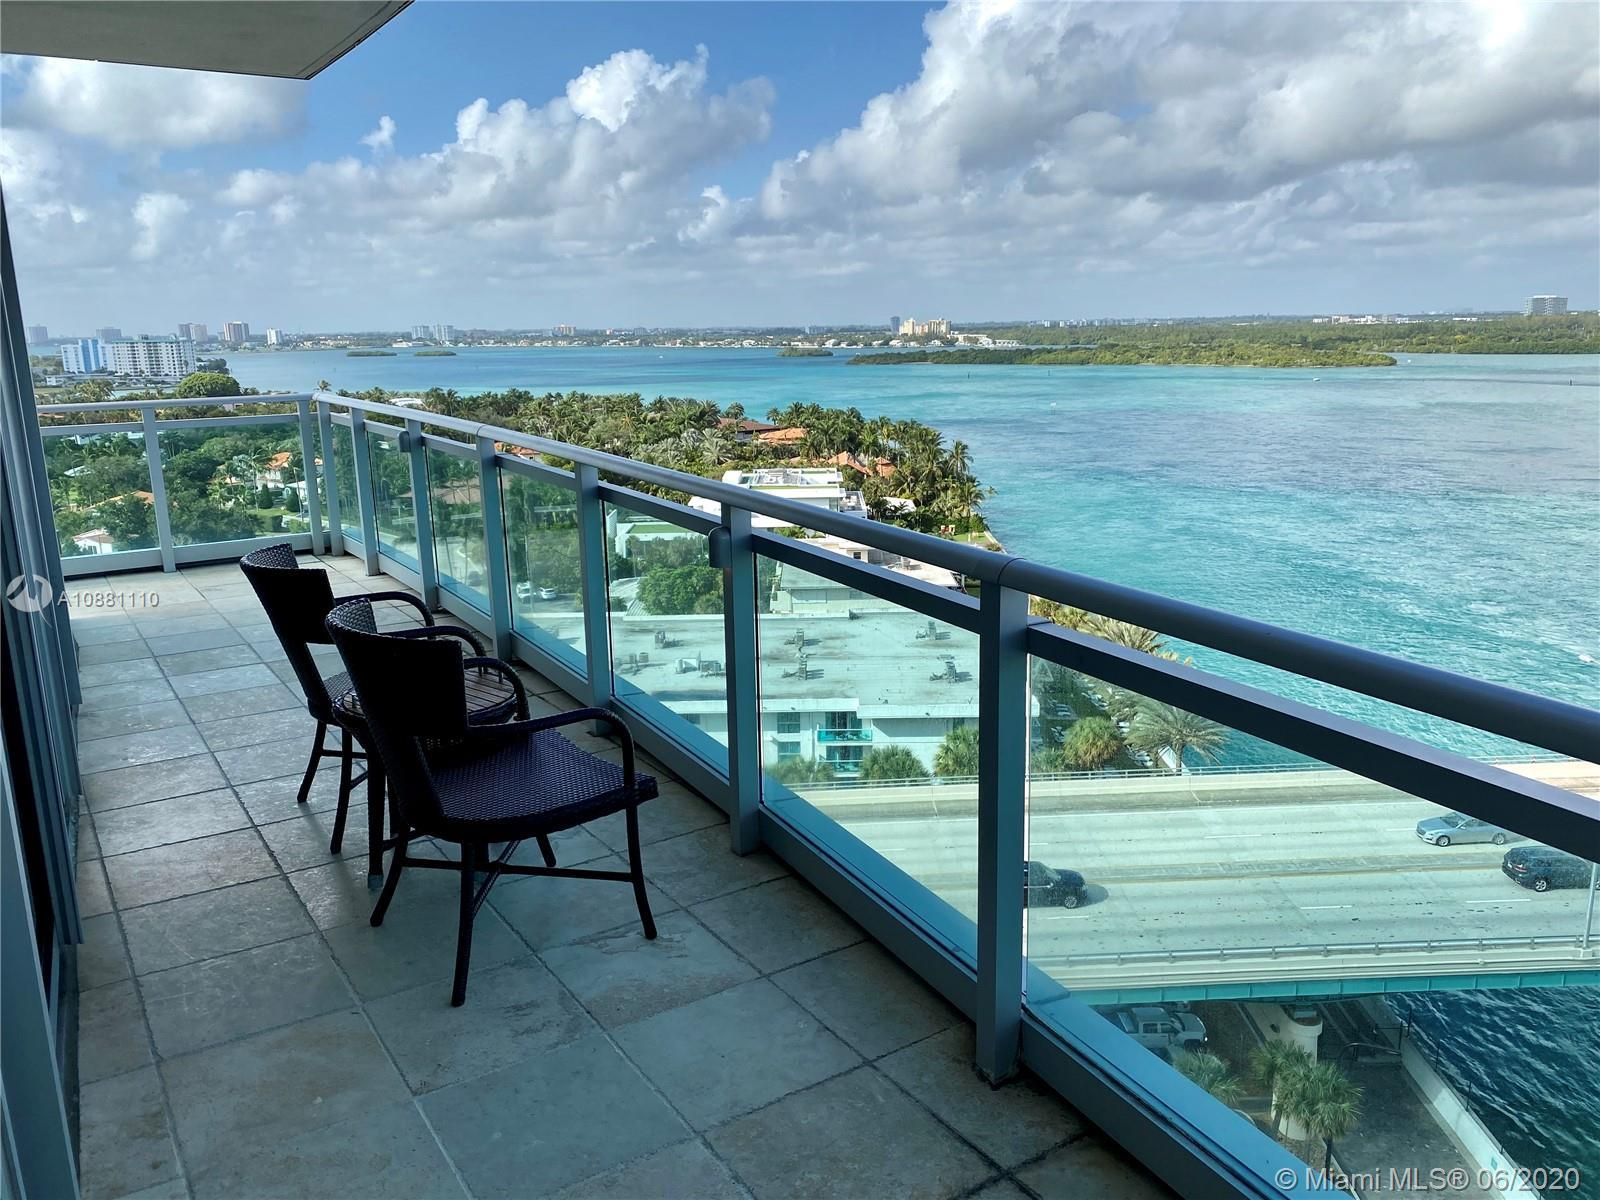 Exquisite 1 Bedroom Condo-Hotel Residence in the 5 stars, luxury ONE Bal Harbour. Panoramic views of